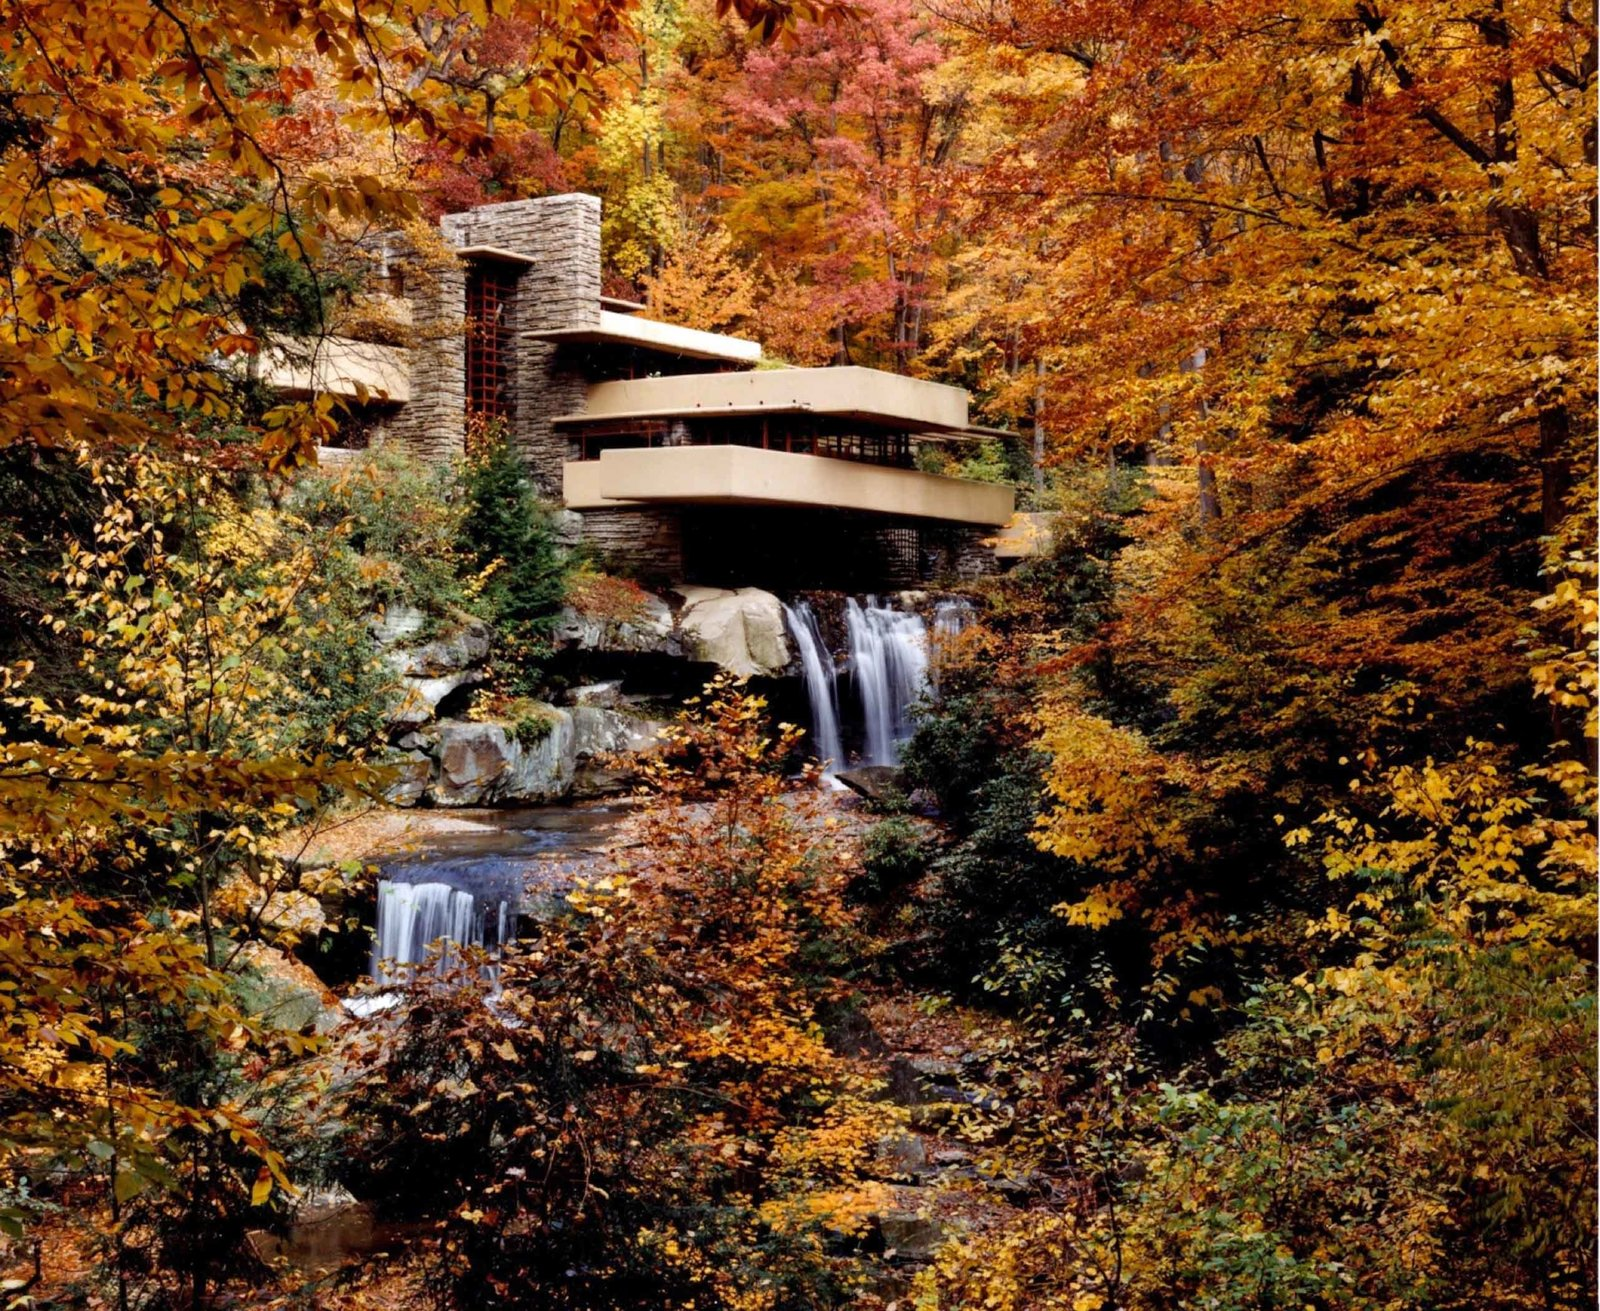 Fallingwater (1935, Mill Run, Pennsylvania). The legendary Fallingwater residence, a masterpiece in concrete, steel, and glass, is built with three levels that project over a 30-foot waterfall. Mid Modern by Jonathan Simcoe